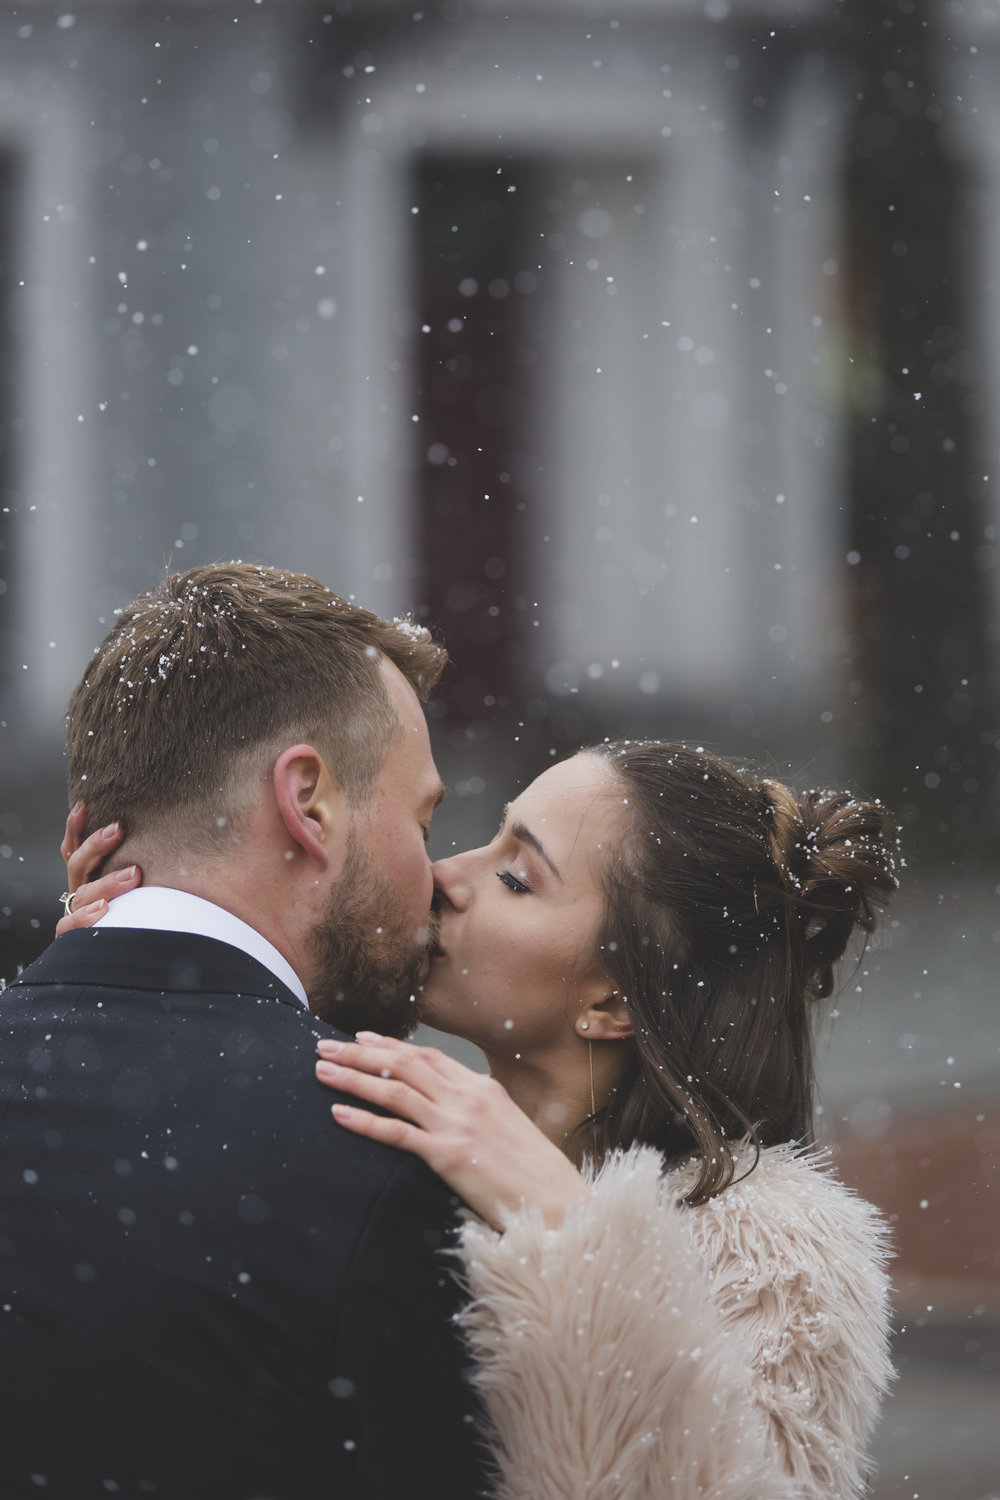 Kissing snow Wedding photo by wedding photographer Valdur Rosenvald